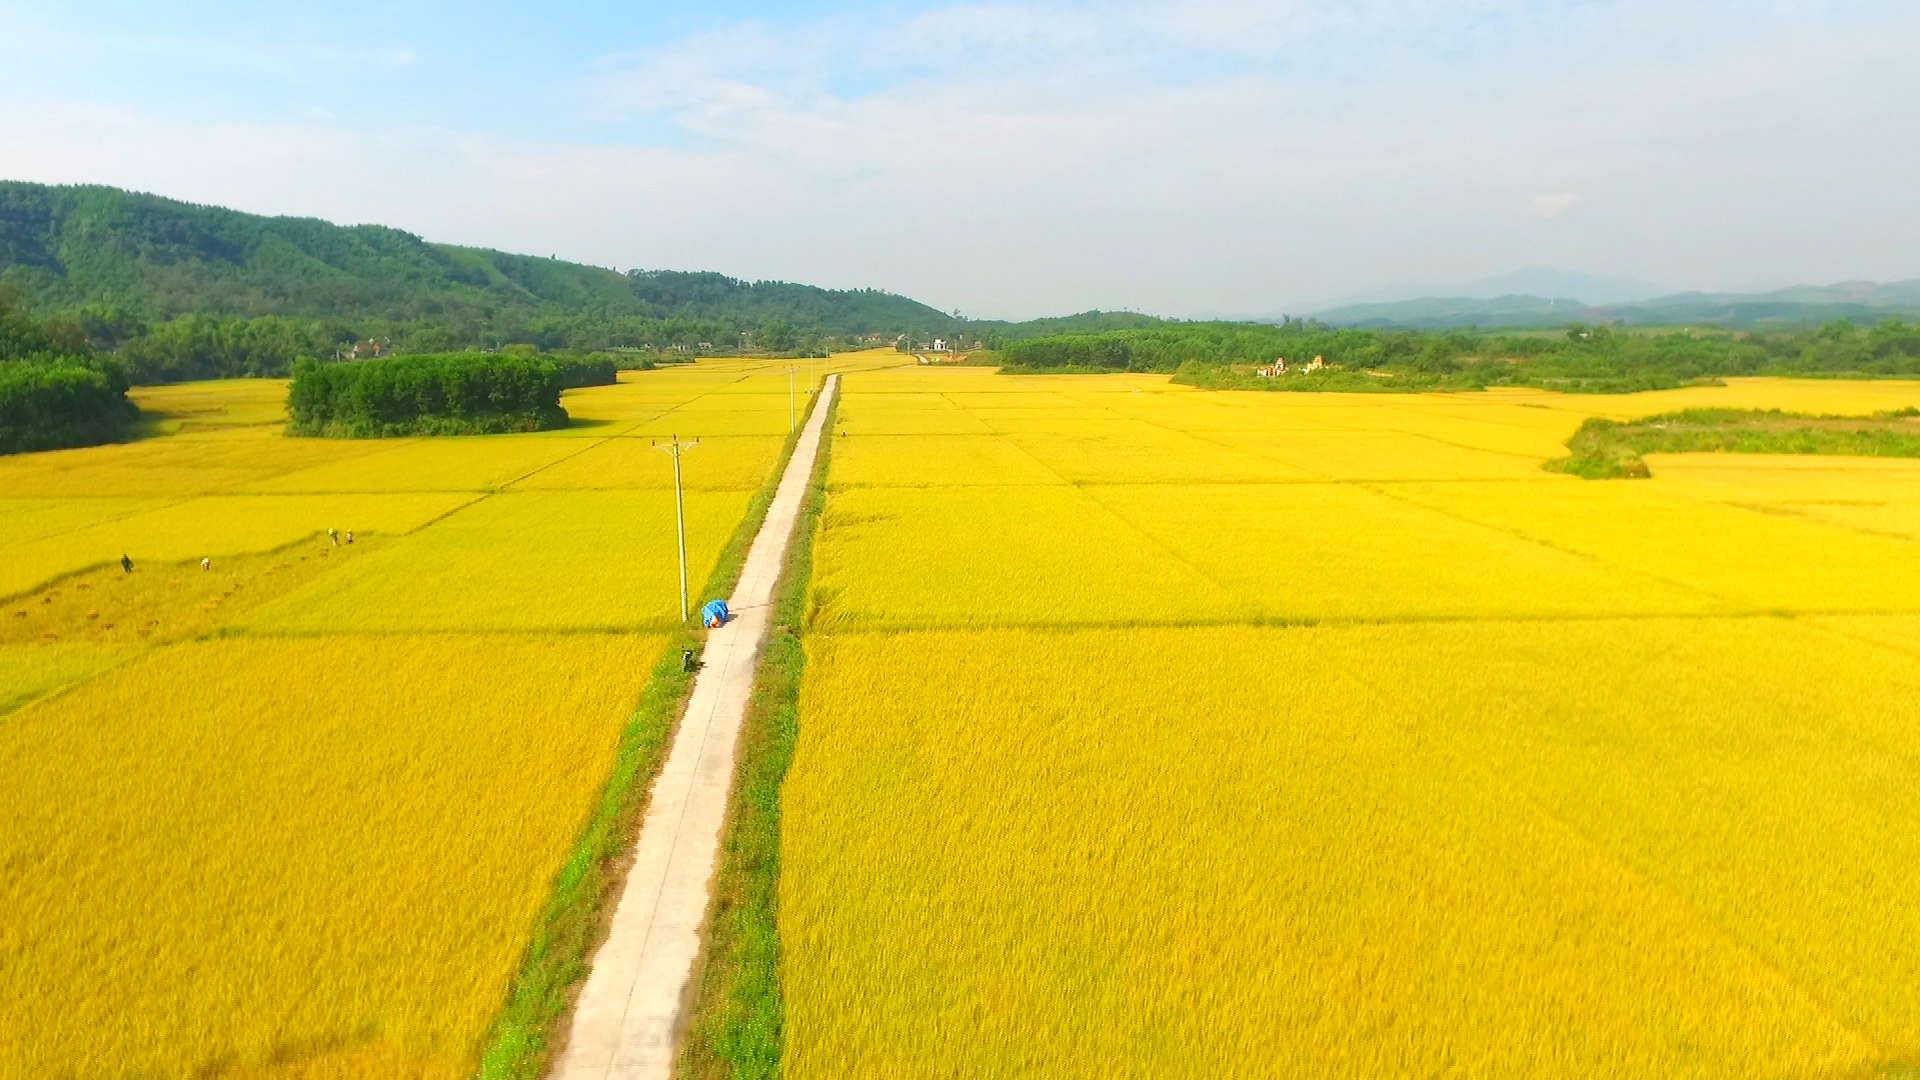 Maintaining the ecology of wet rice agriculture